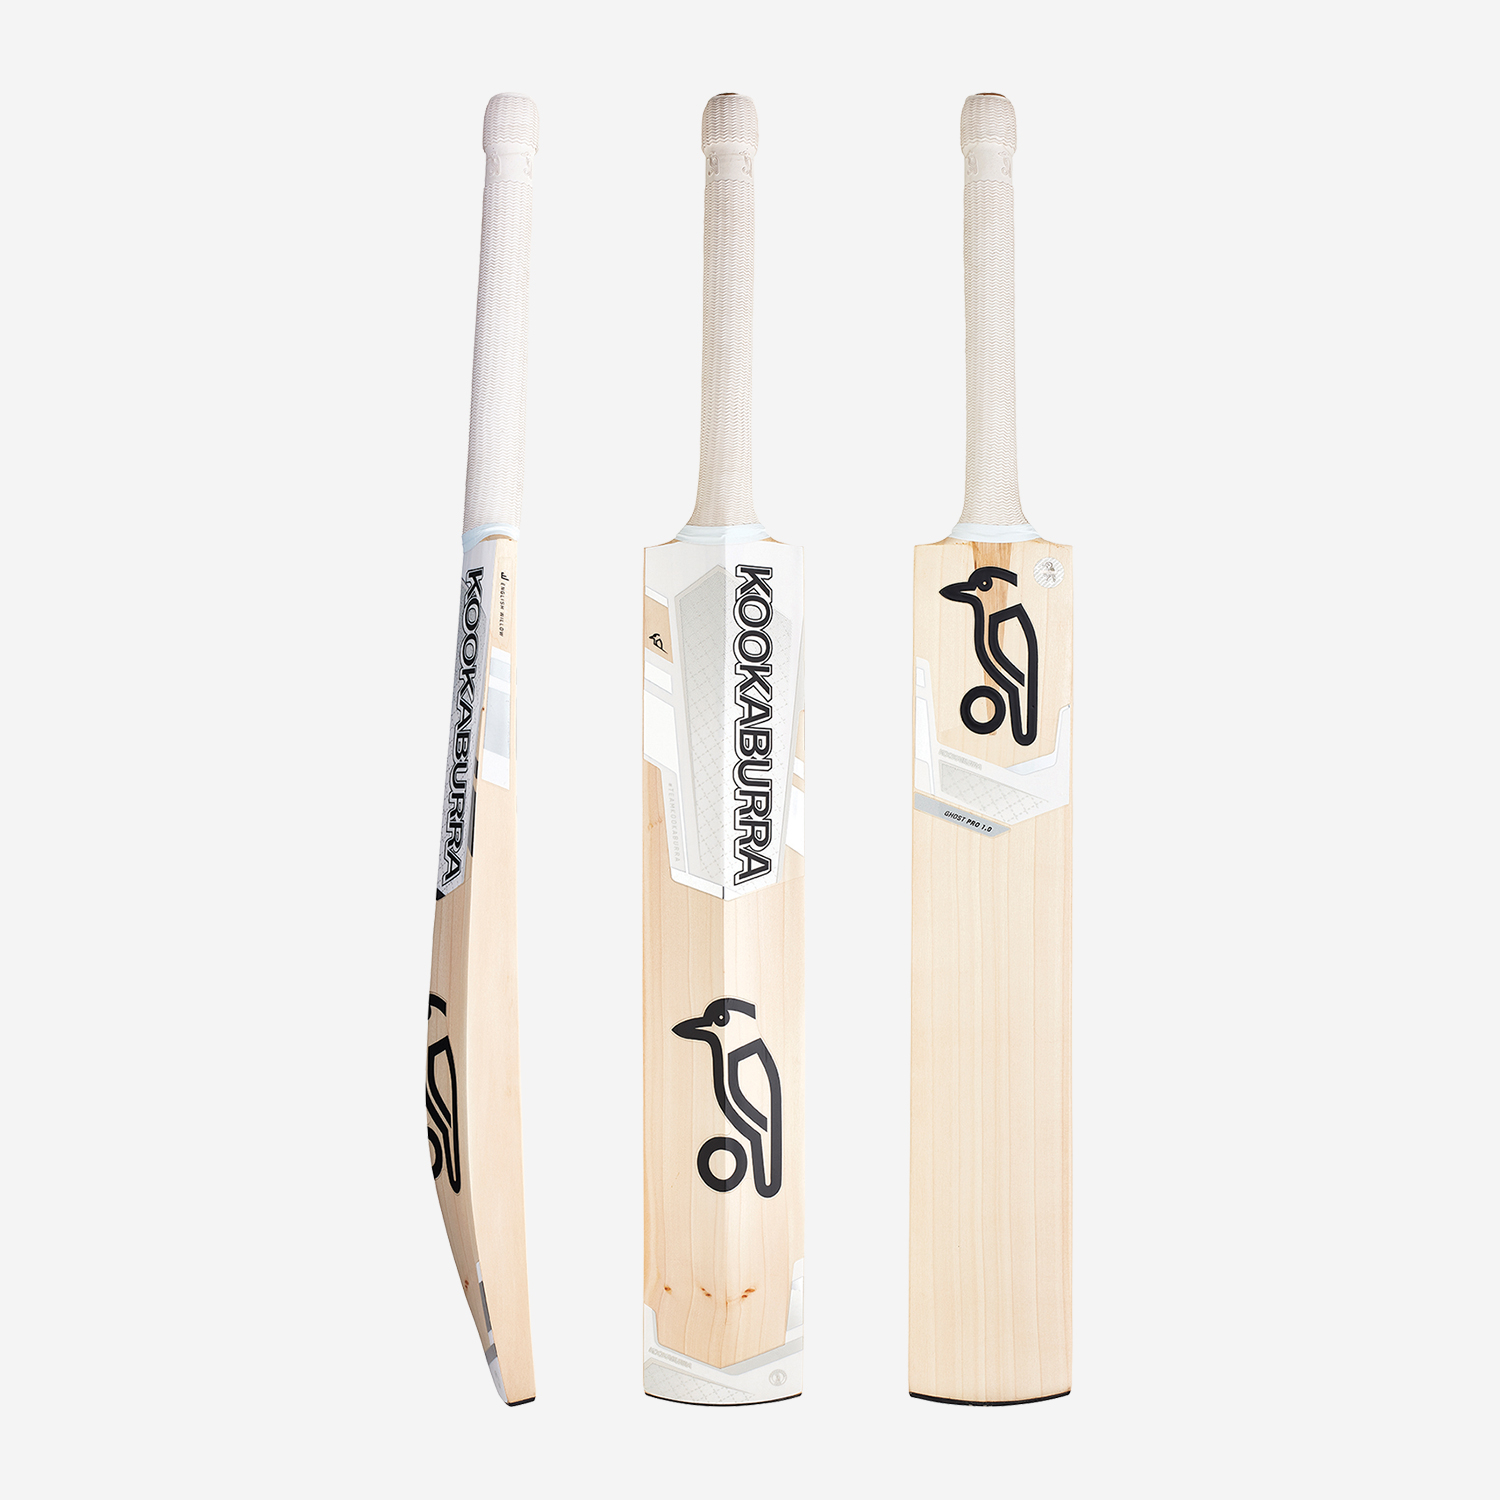 Ghost Pro 1.0 Cricket Bat